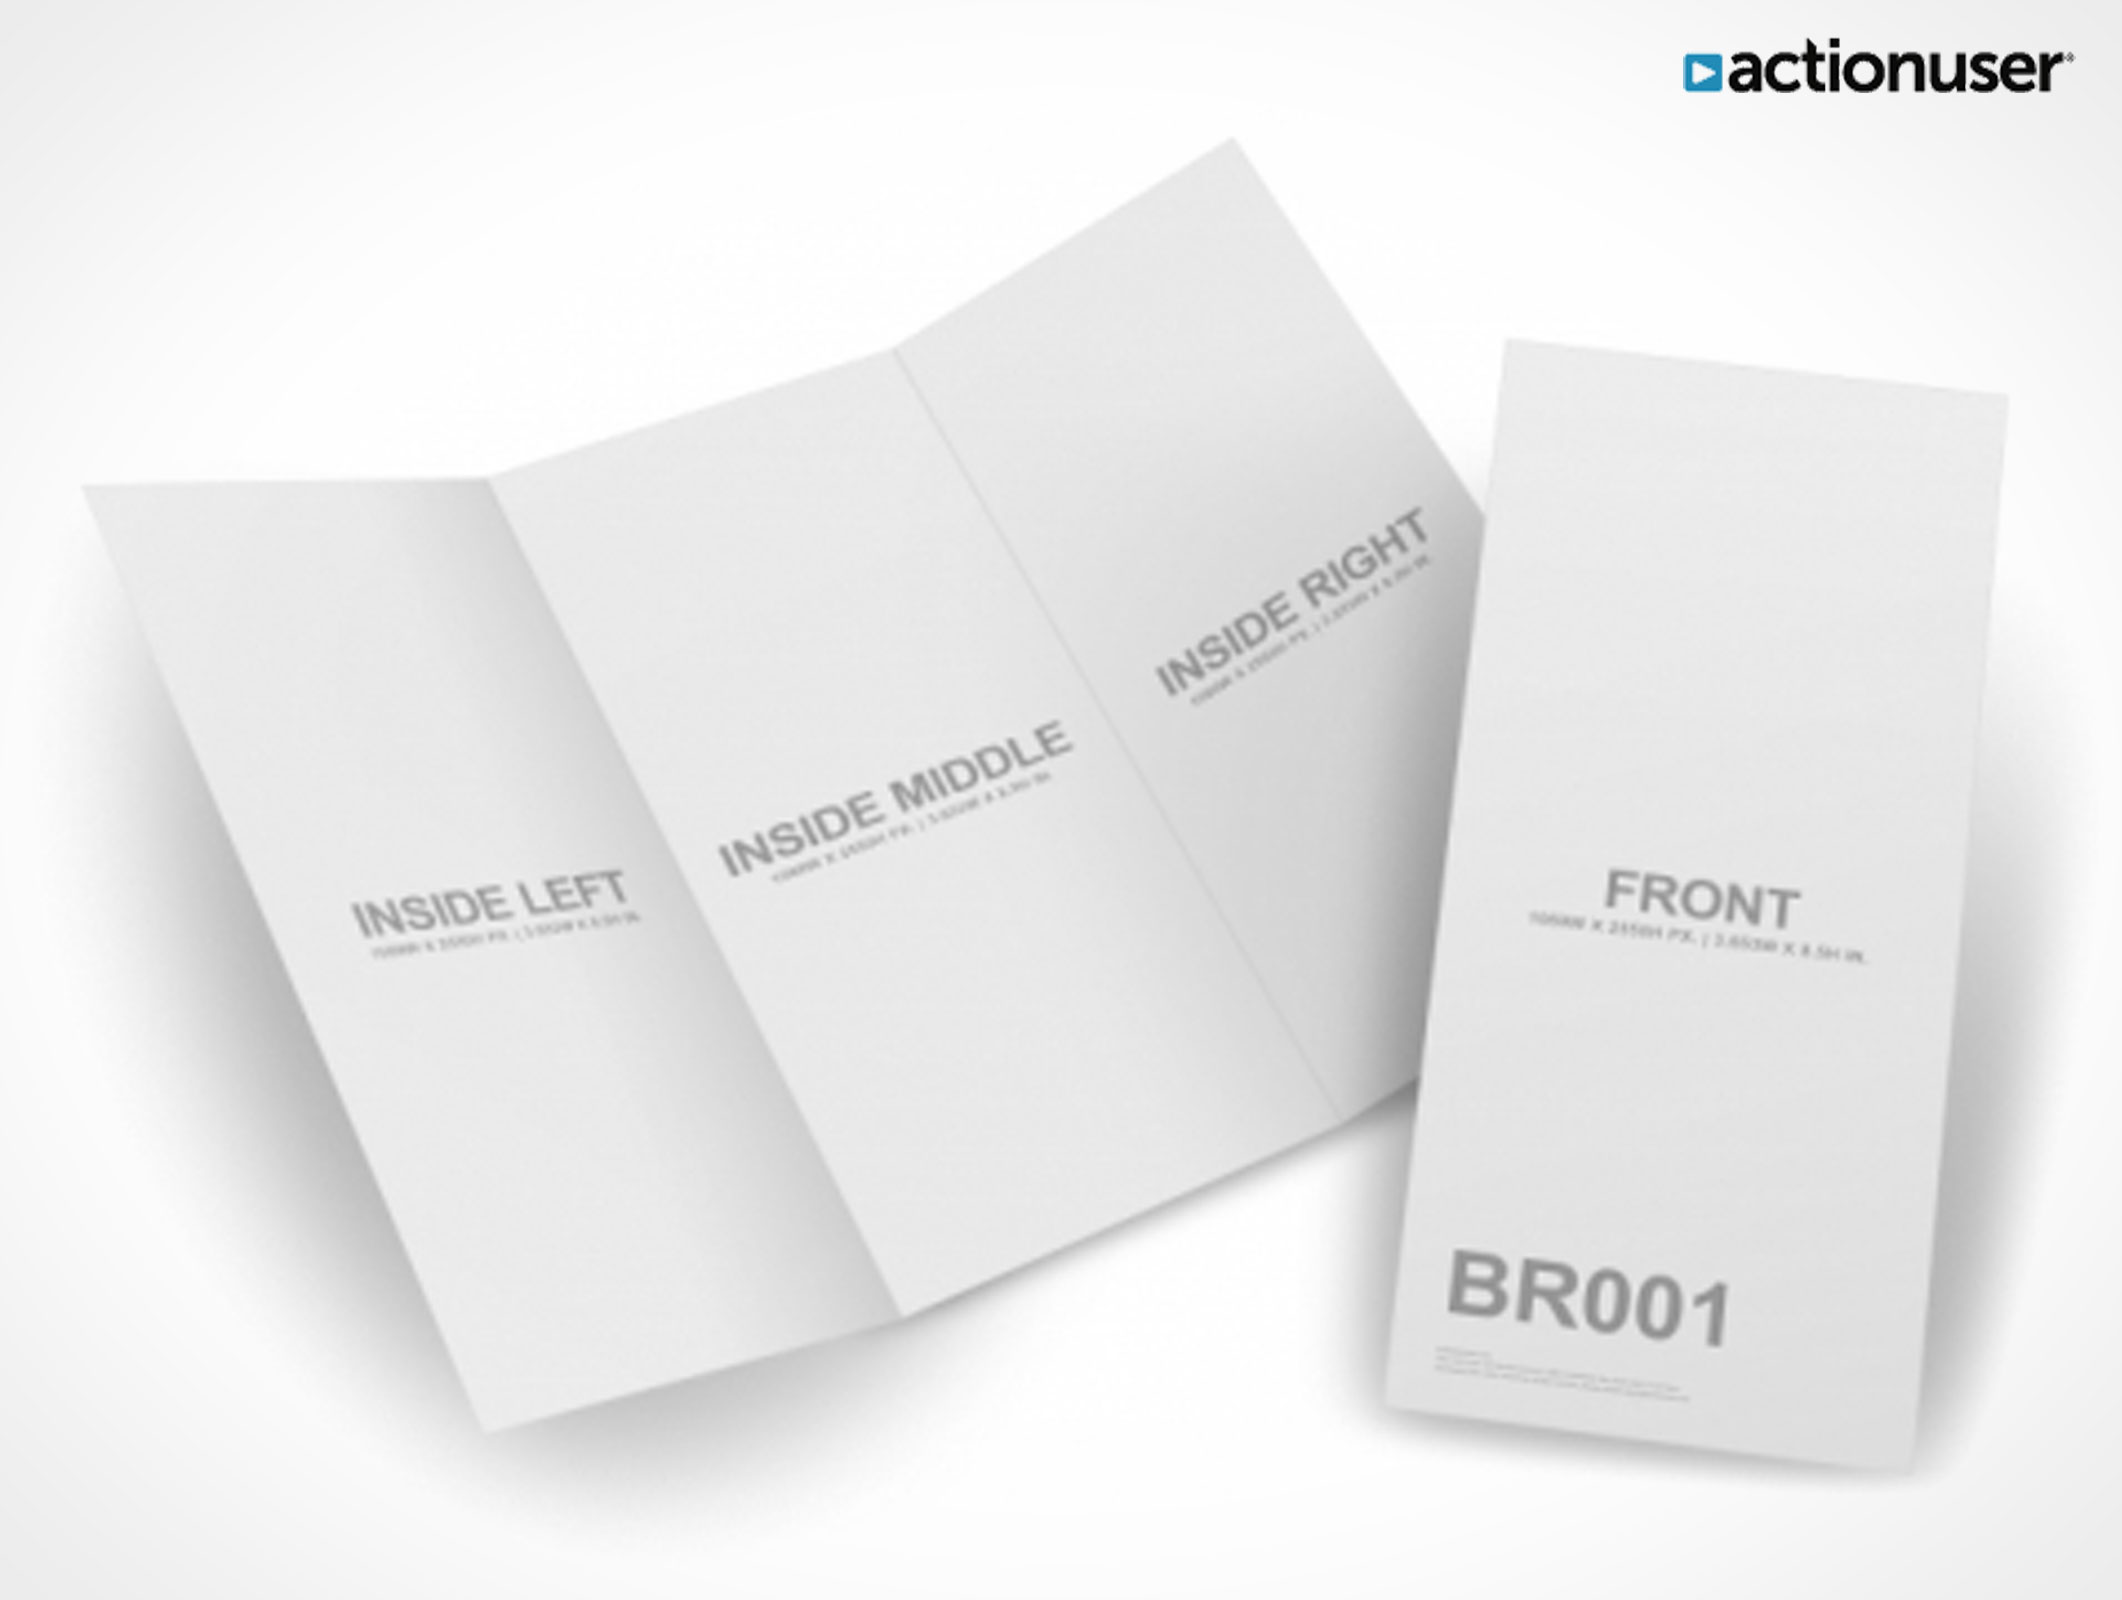 Psd mockup templates pixeden psdgraphics actionuser for Tri fold brochure template psd